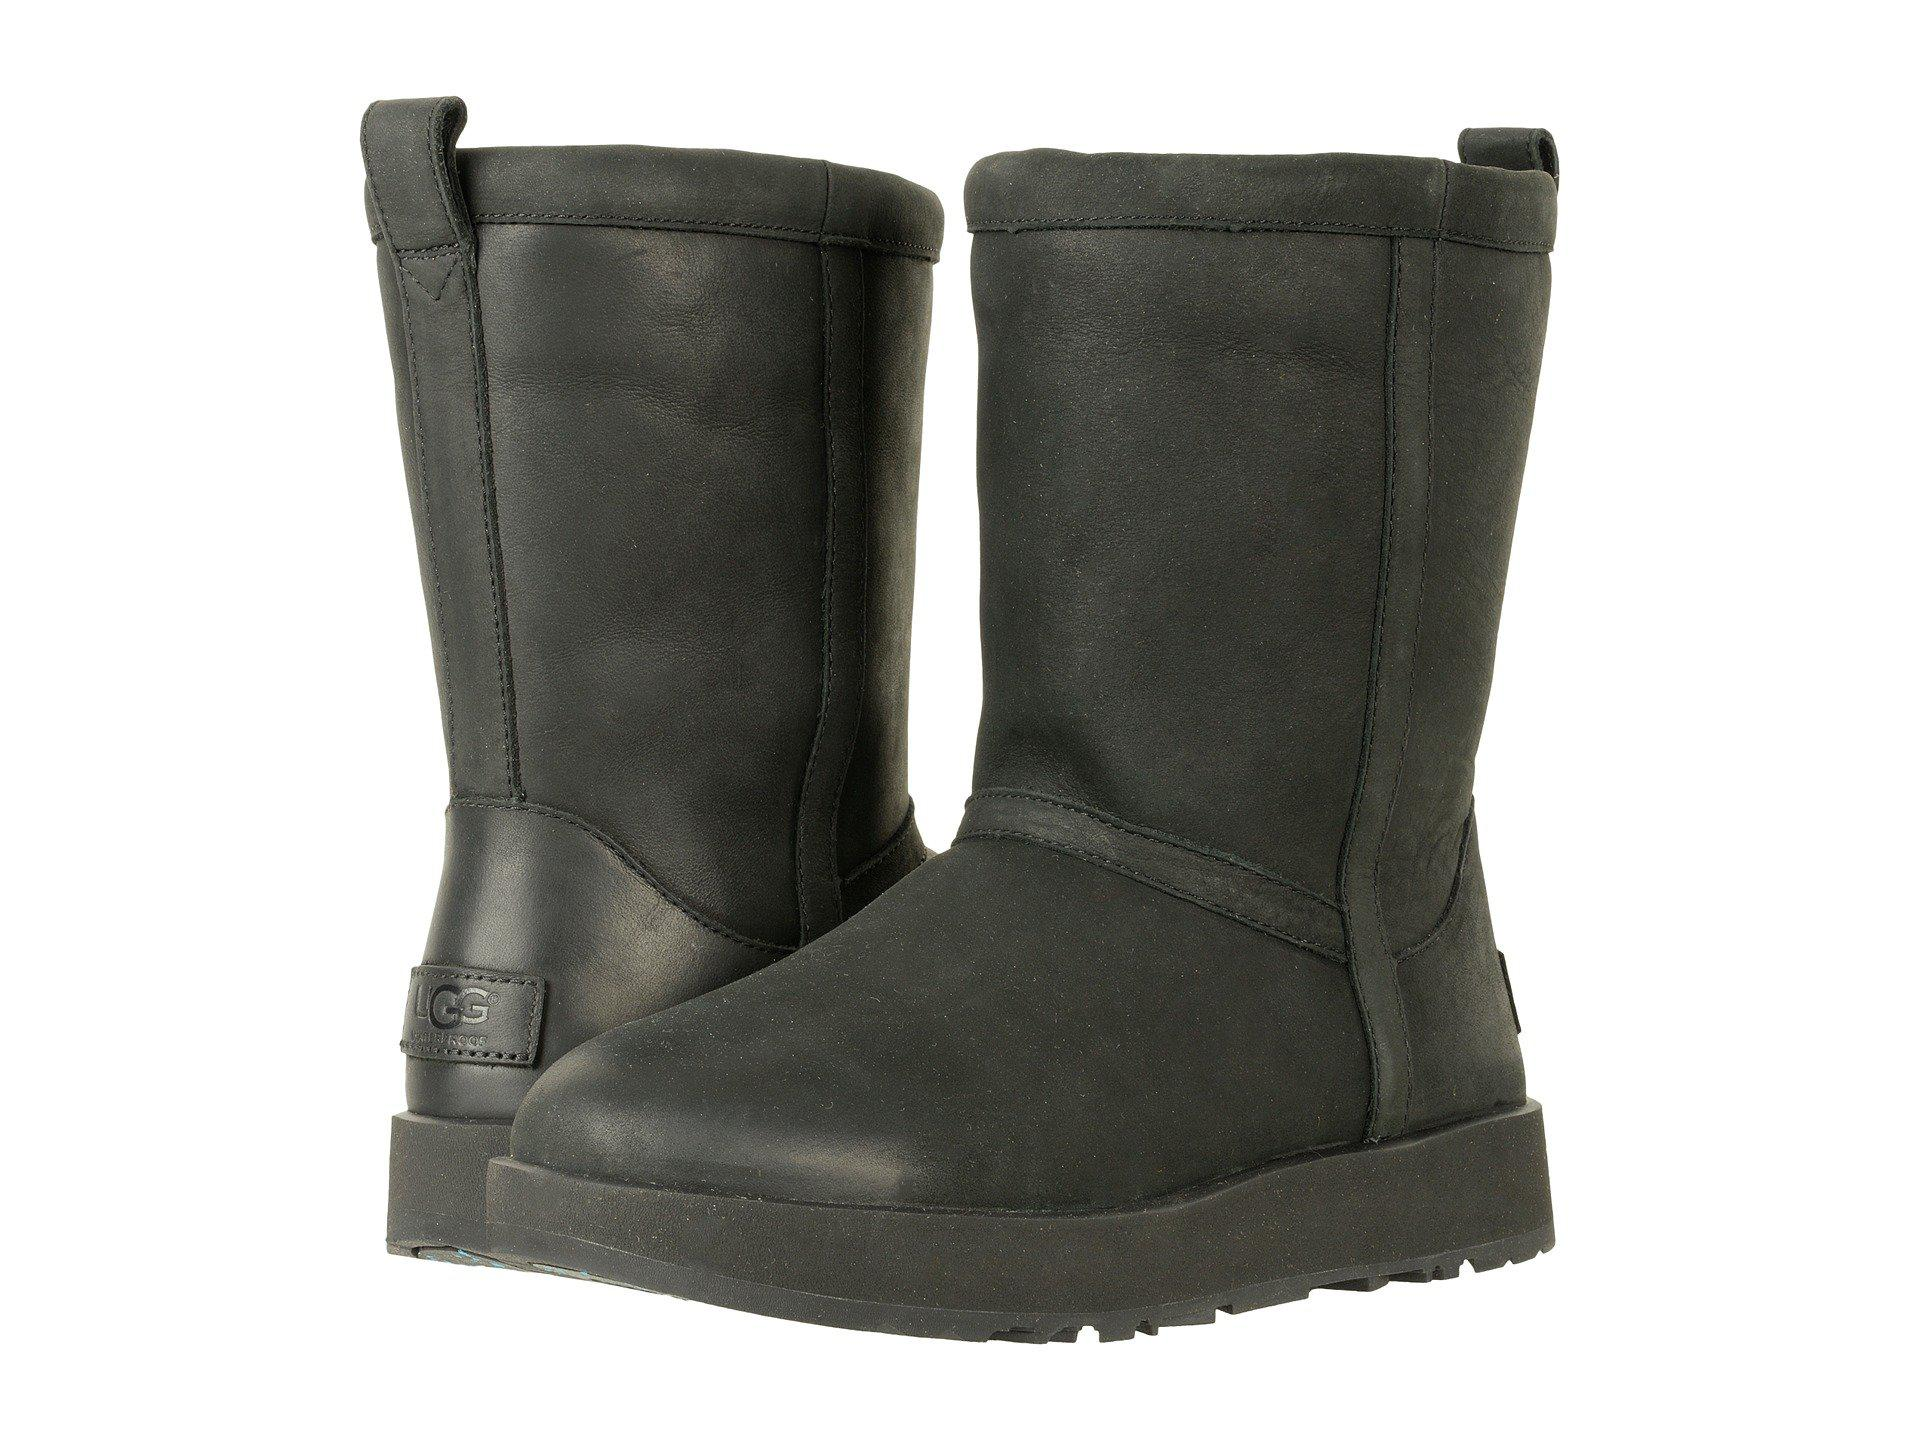 a2570c10095 promo code for ugg waterproof black boots 69fcb dbbc8